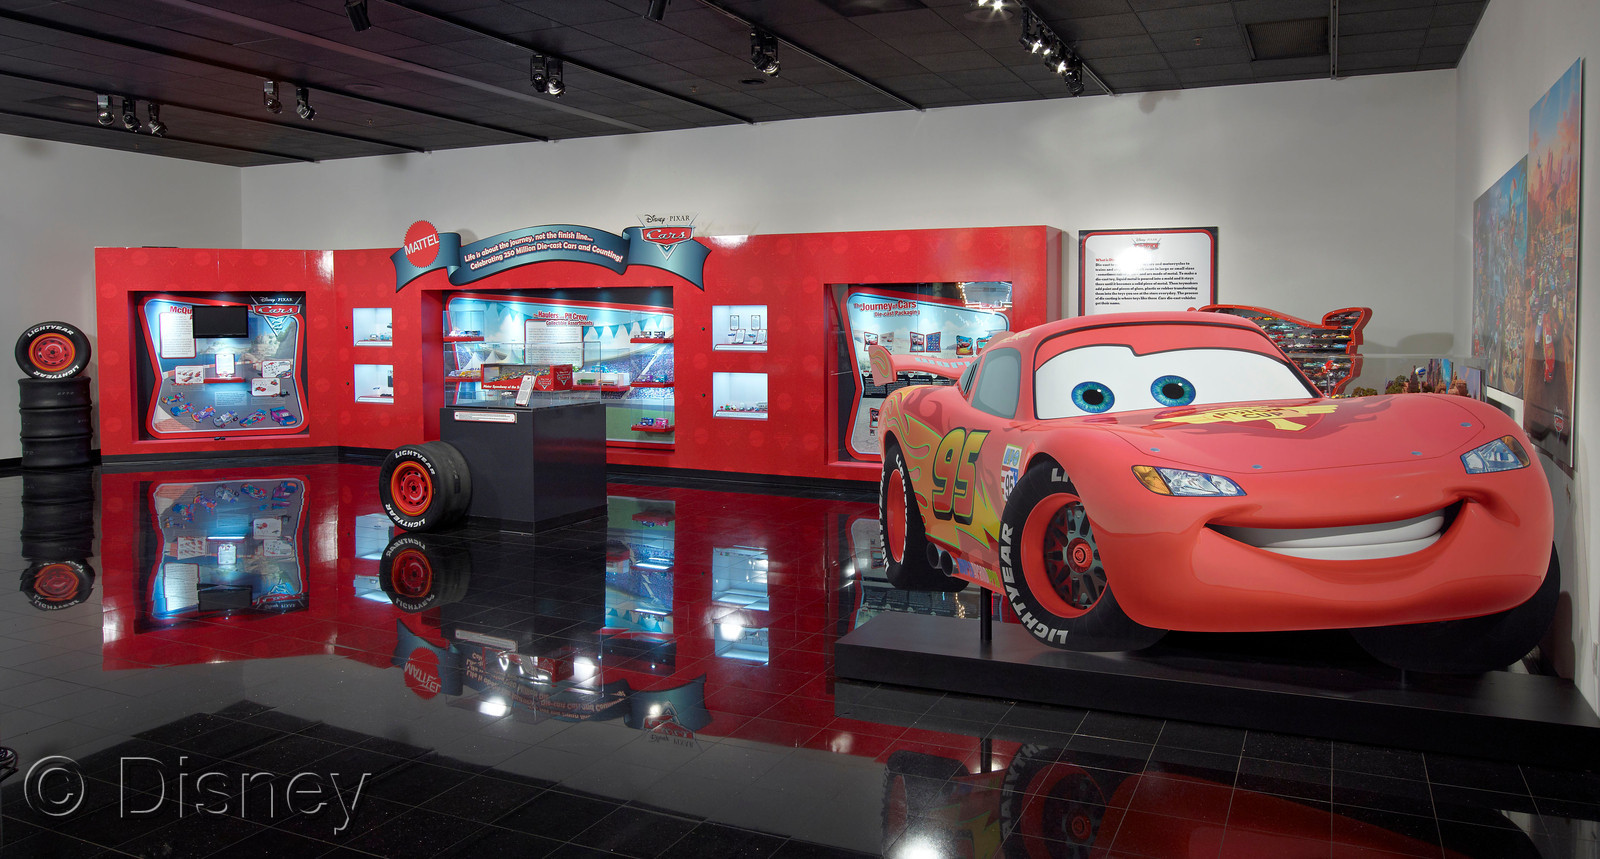 Mattel Exhibit Featuring Disney Pixar Cars Die-cast Vehicles ...